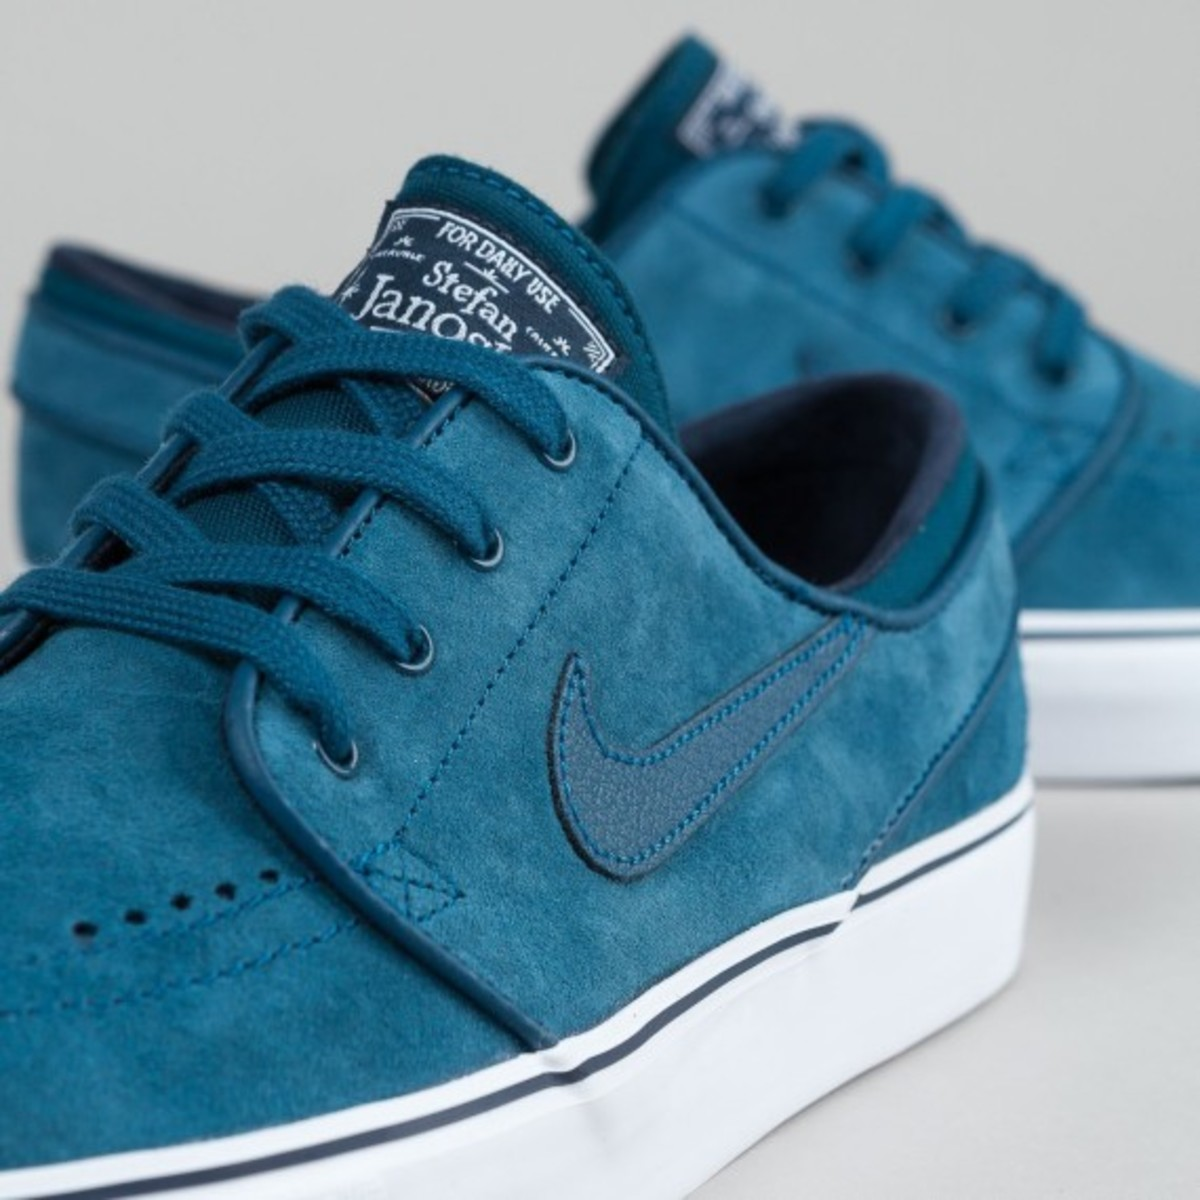 nike-sb-stefan-janoski-blue-force-05